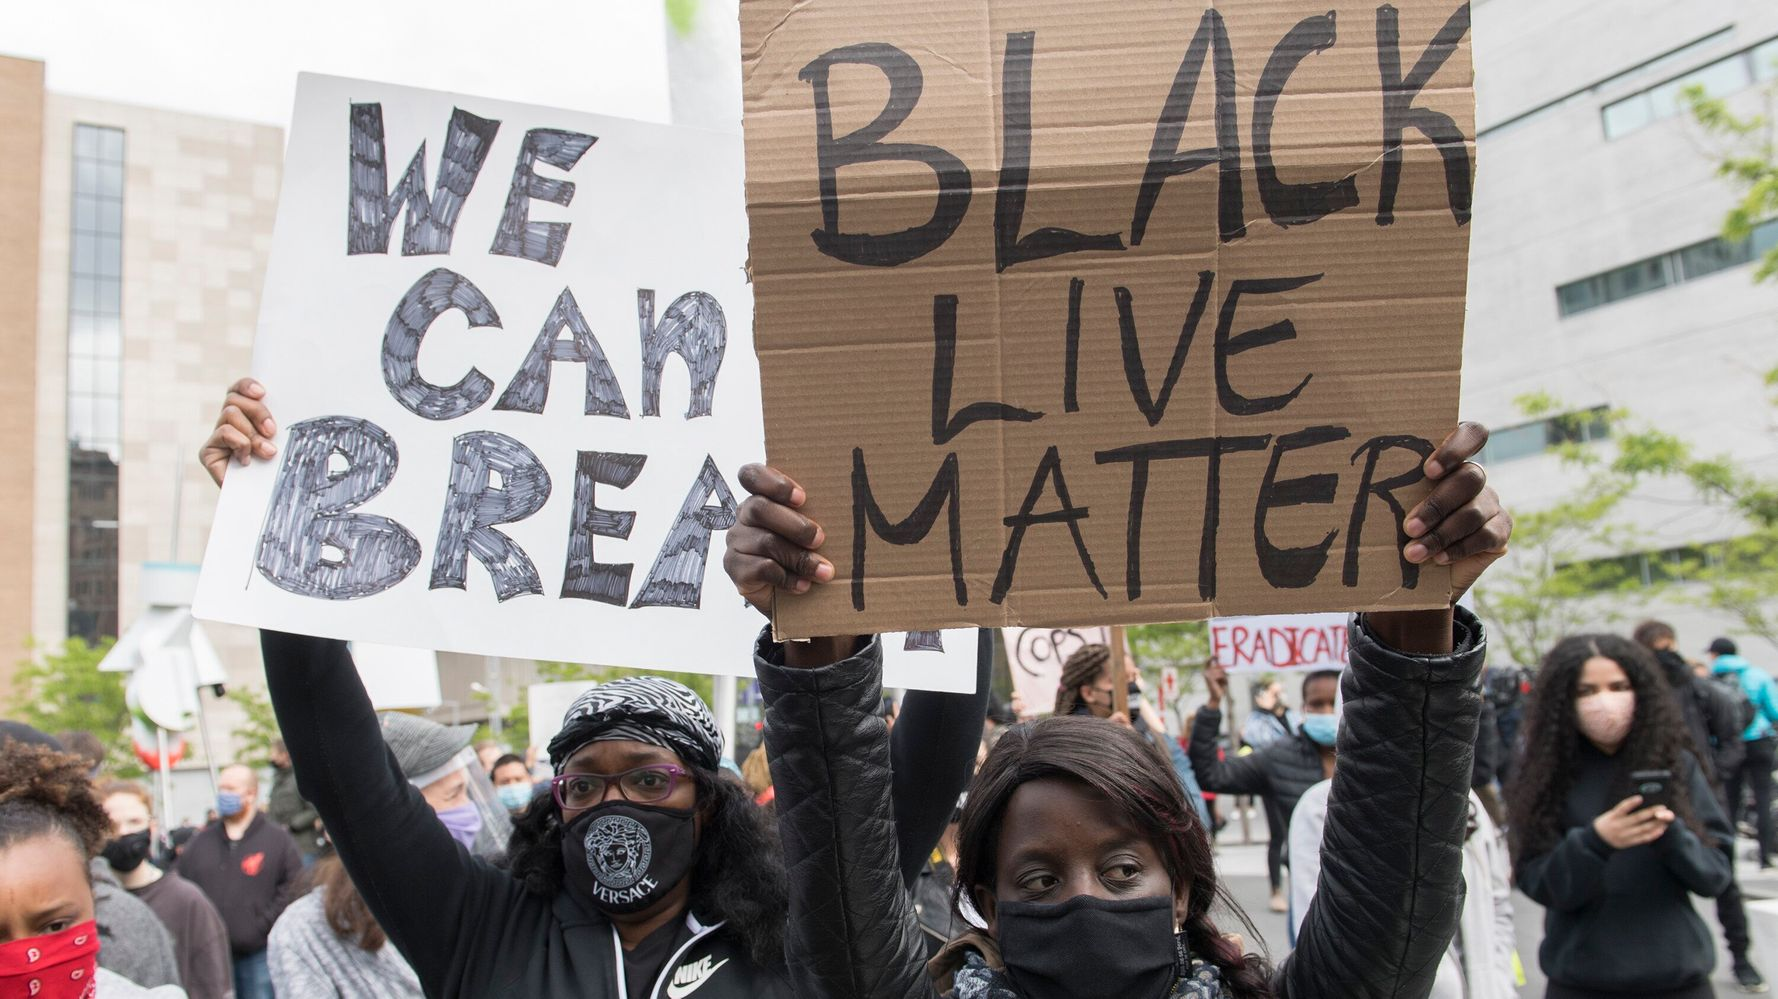 Black Organizations And Anti-Racist Groups Canadians Can Support Now